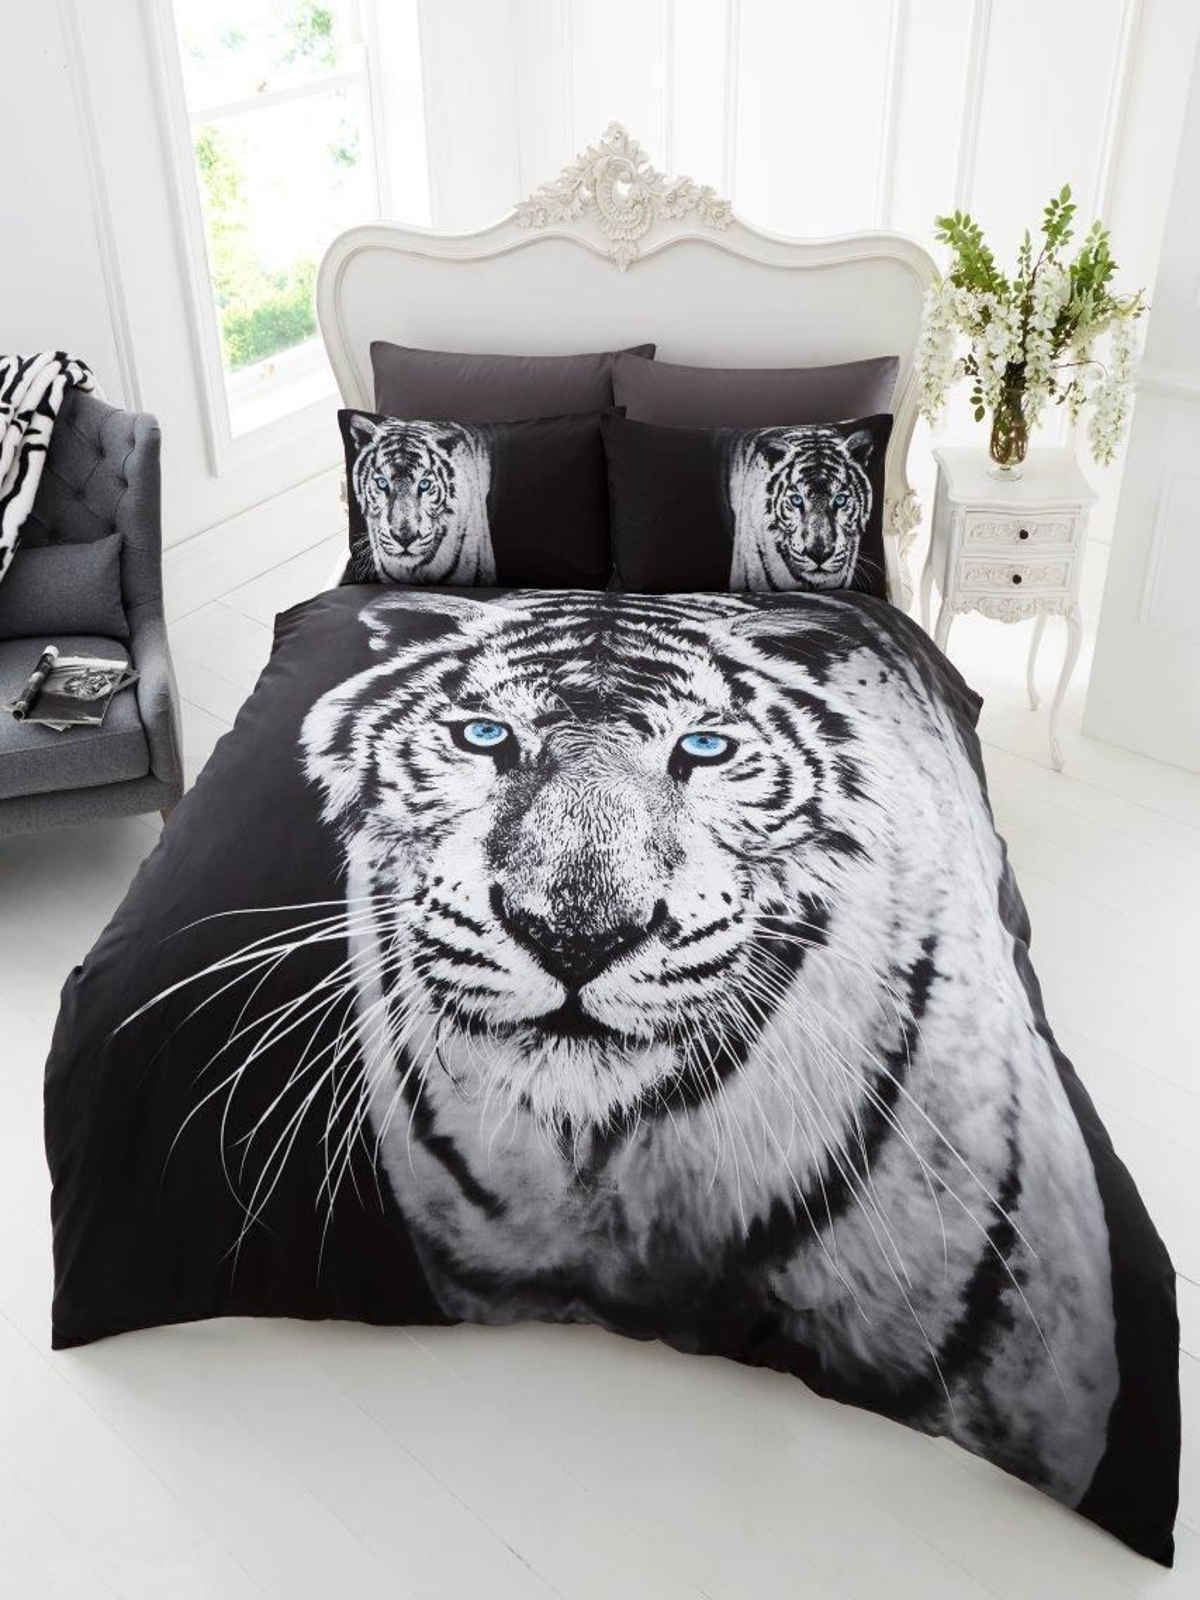 Wildlife Animal Print Duvet Cover Quilt Cover Bedding Sets